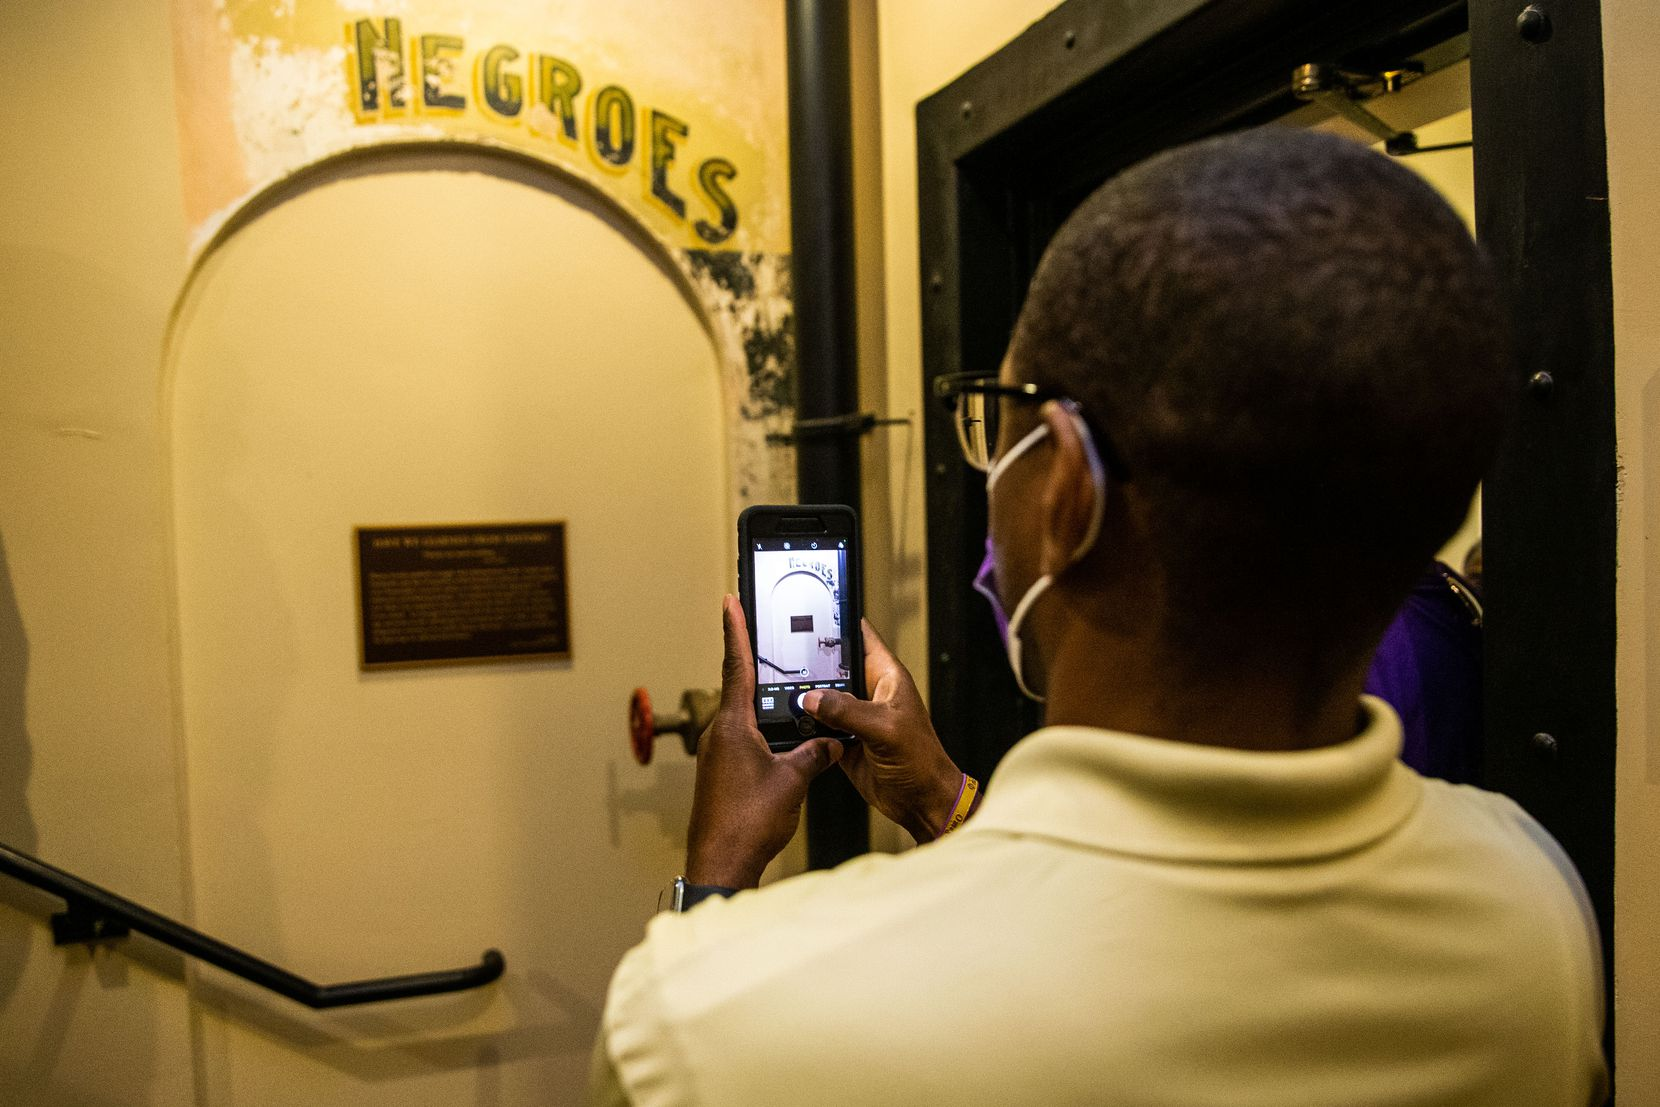 """Dannion McLendon takes a photo of the historical marker and sign that reads """"NEGROES"""" at the Ellis County Courthouse in Waxahachie."""